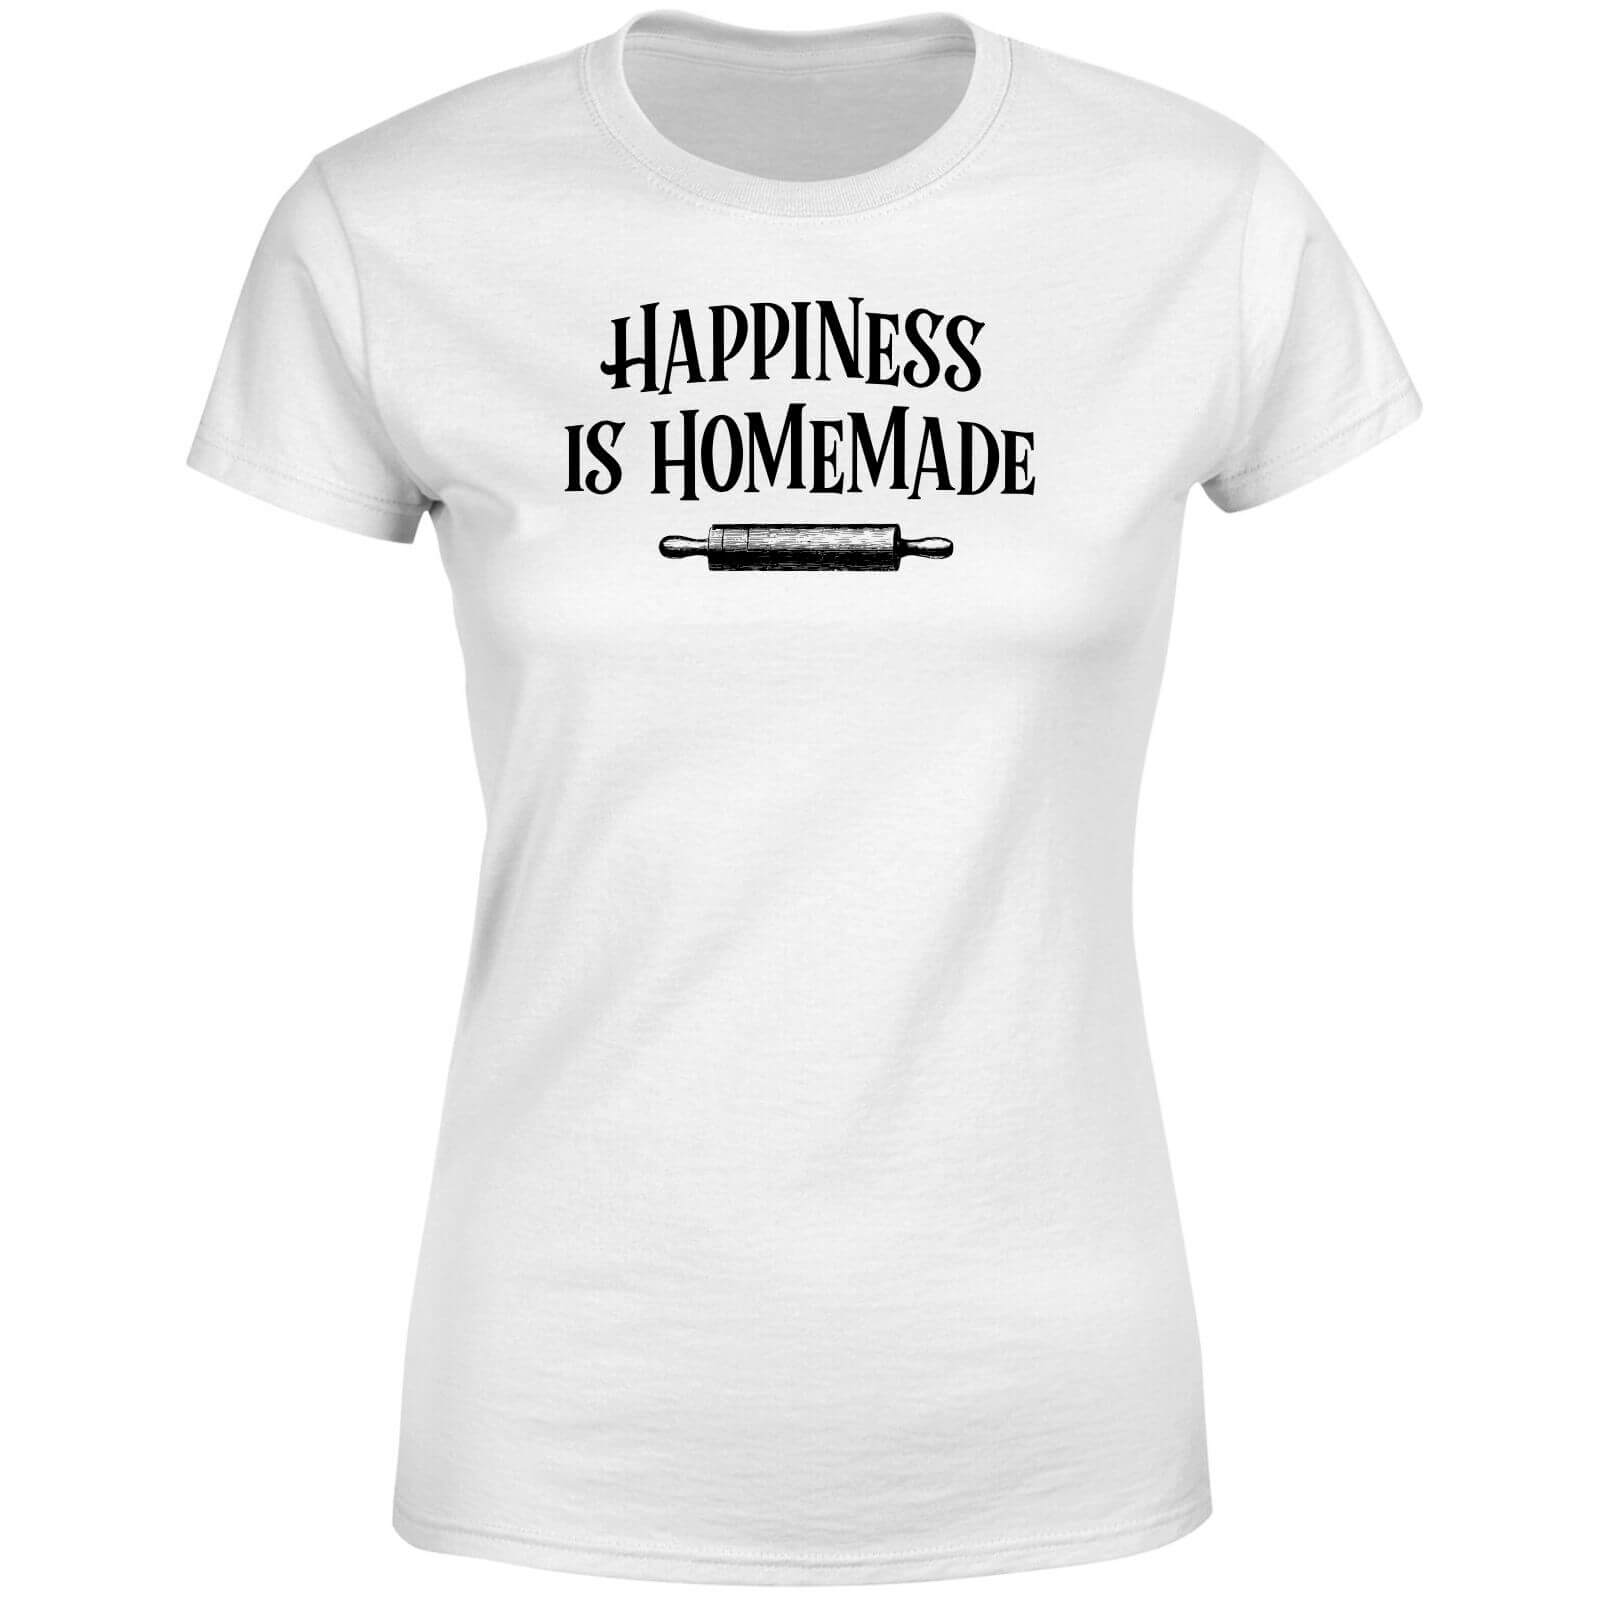 Happiness Is Homemade Women